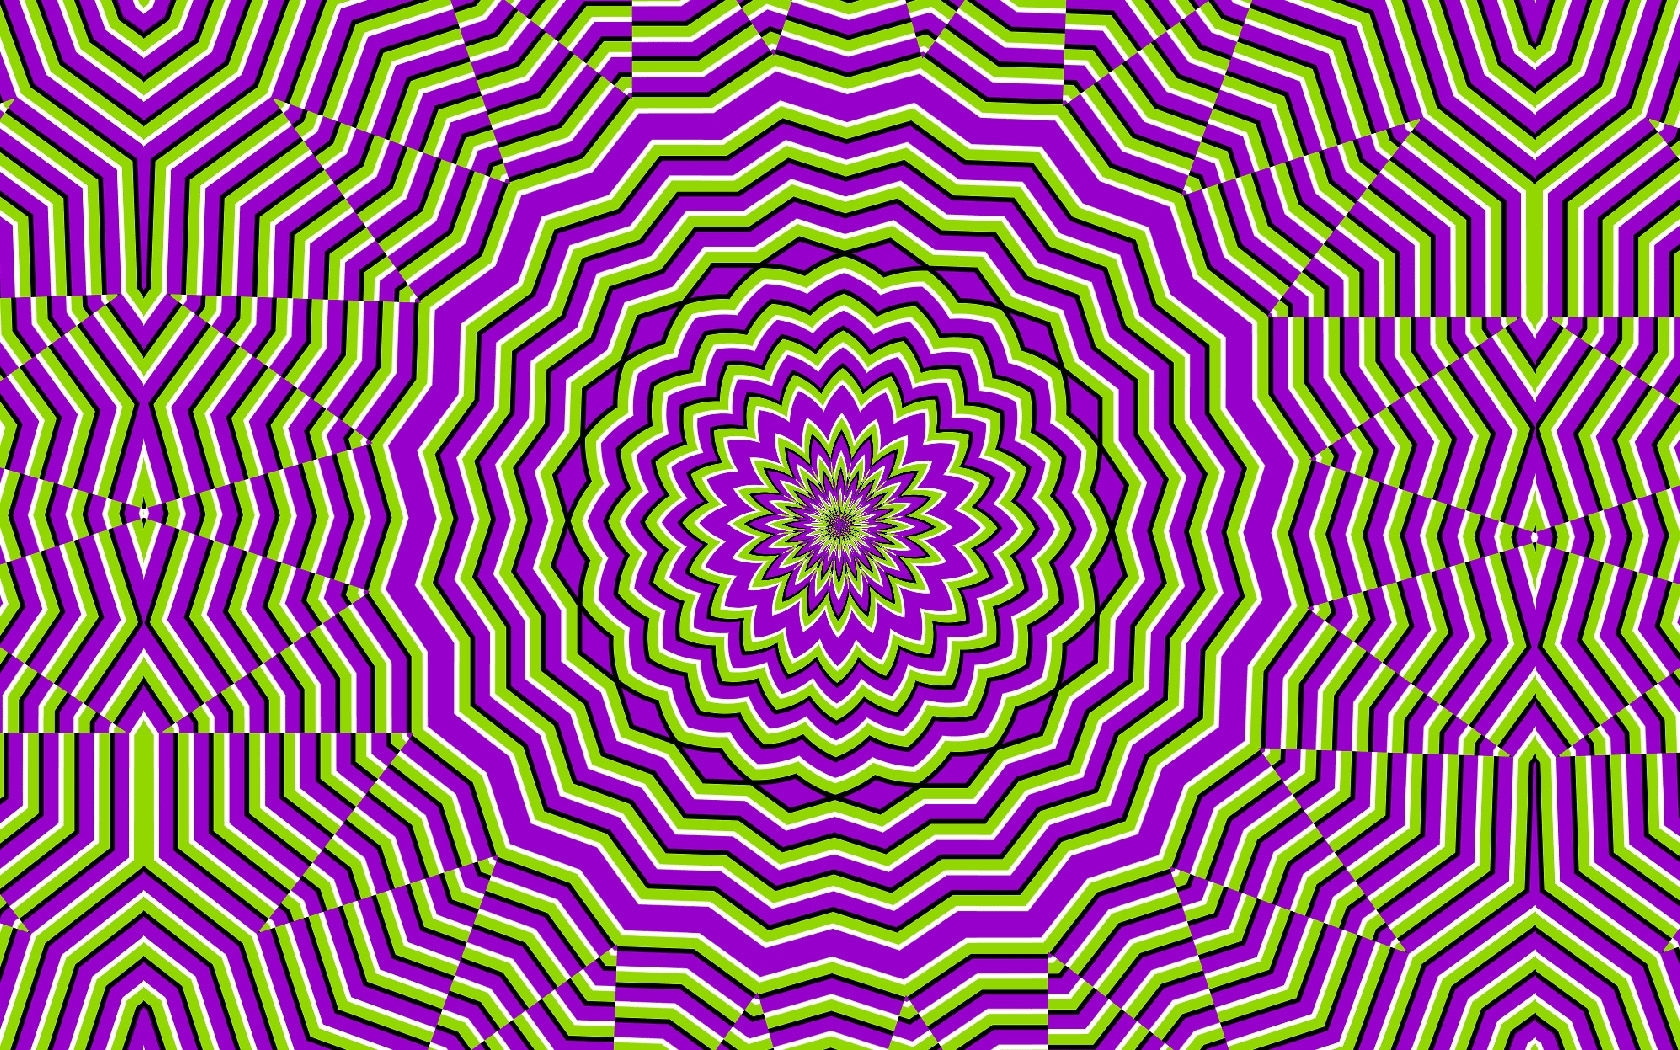 mind teaser teasers moving optical illusion purple | alternate